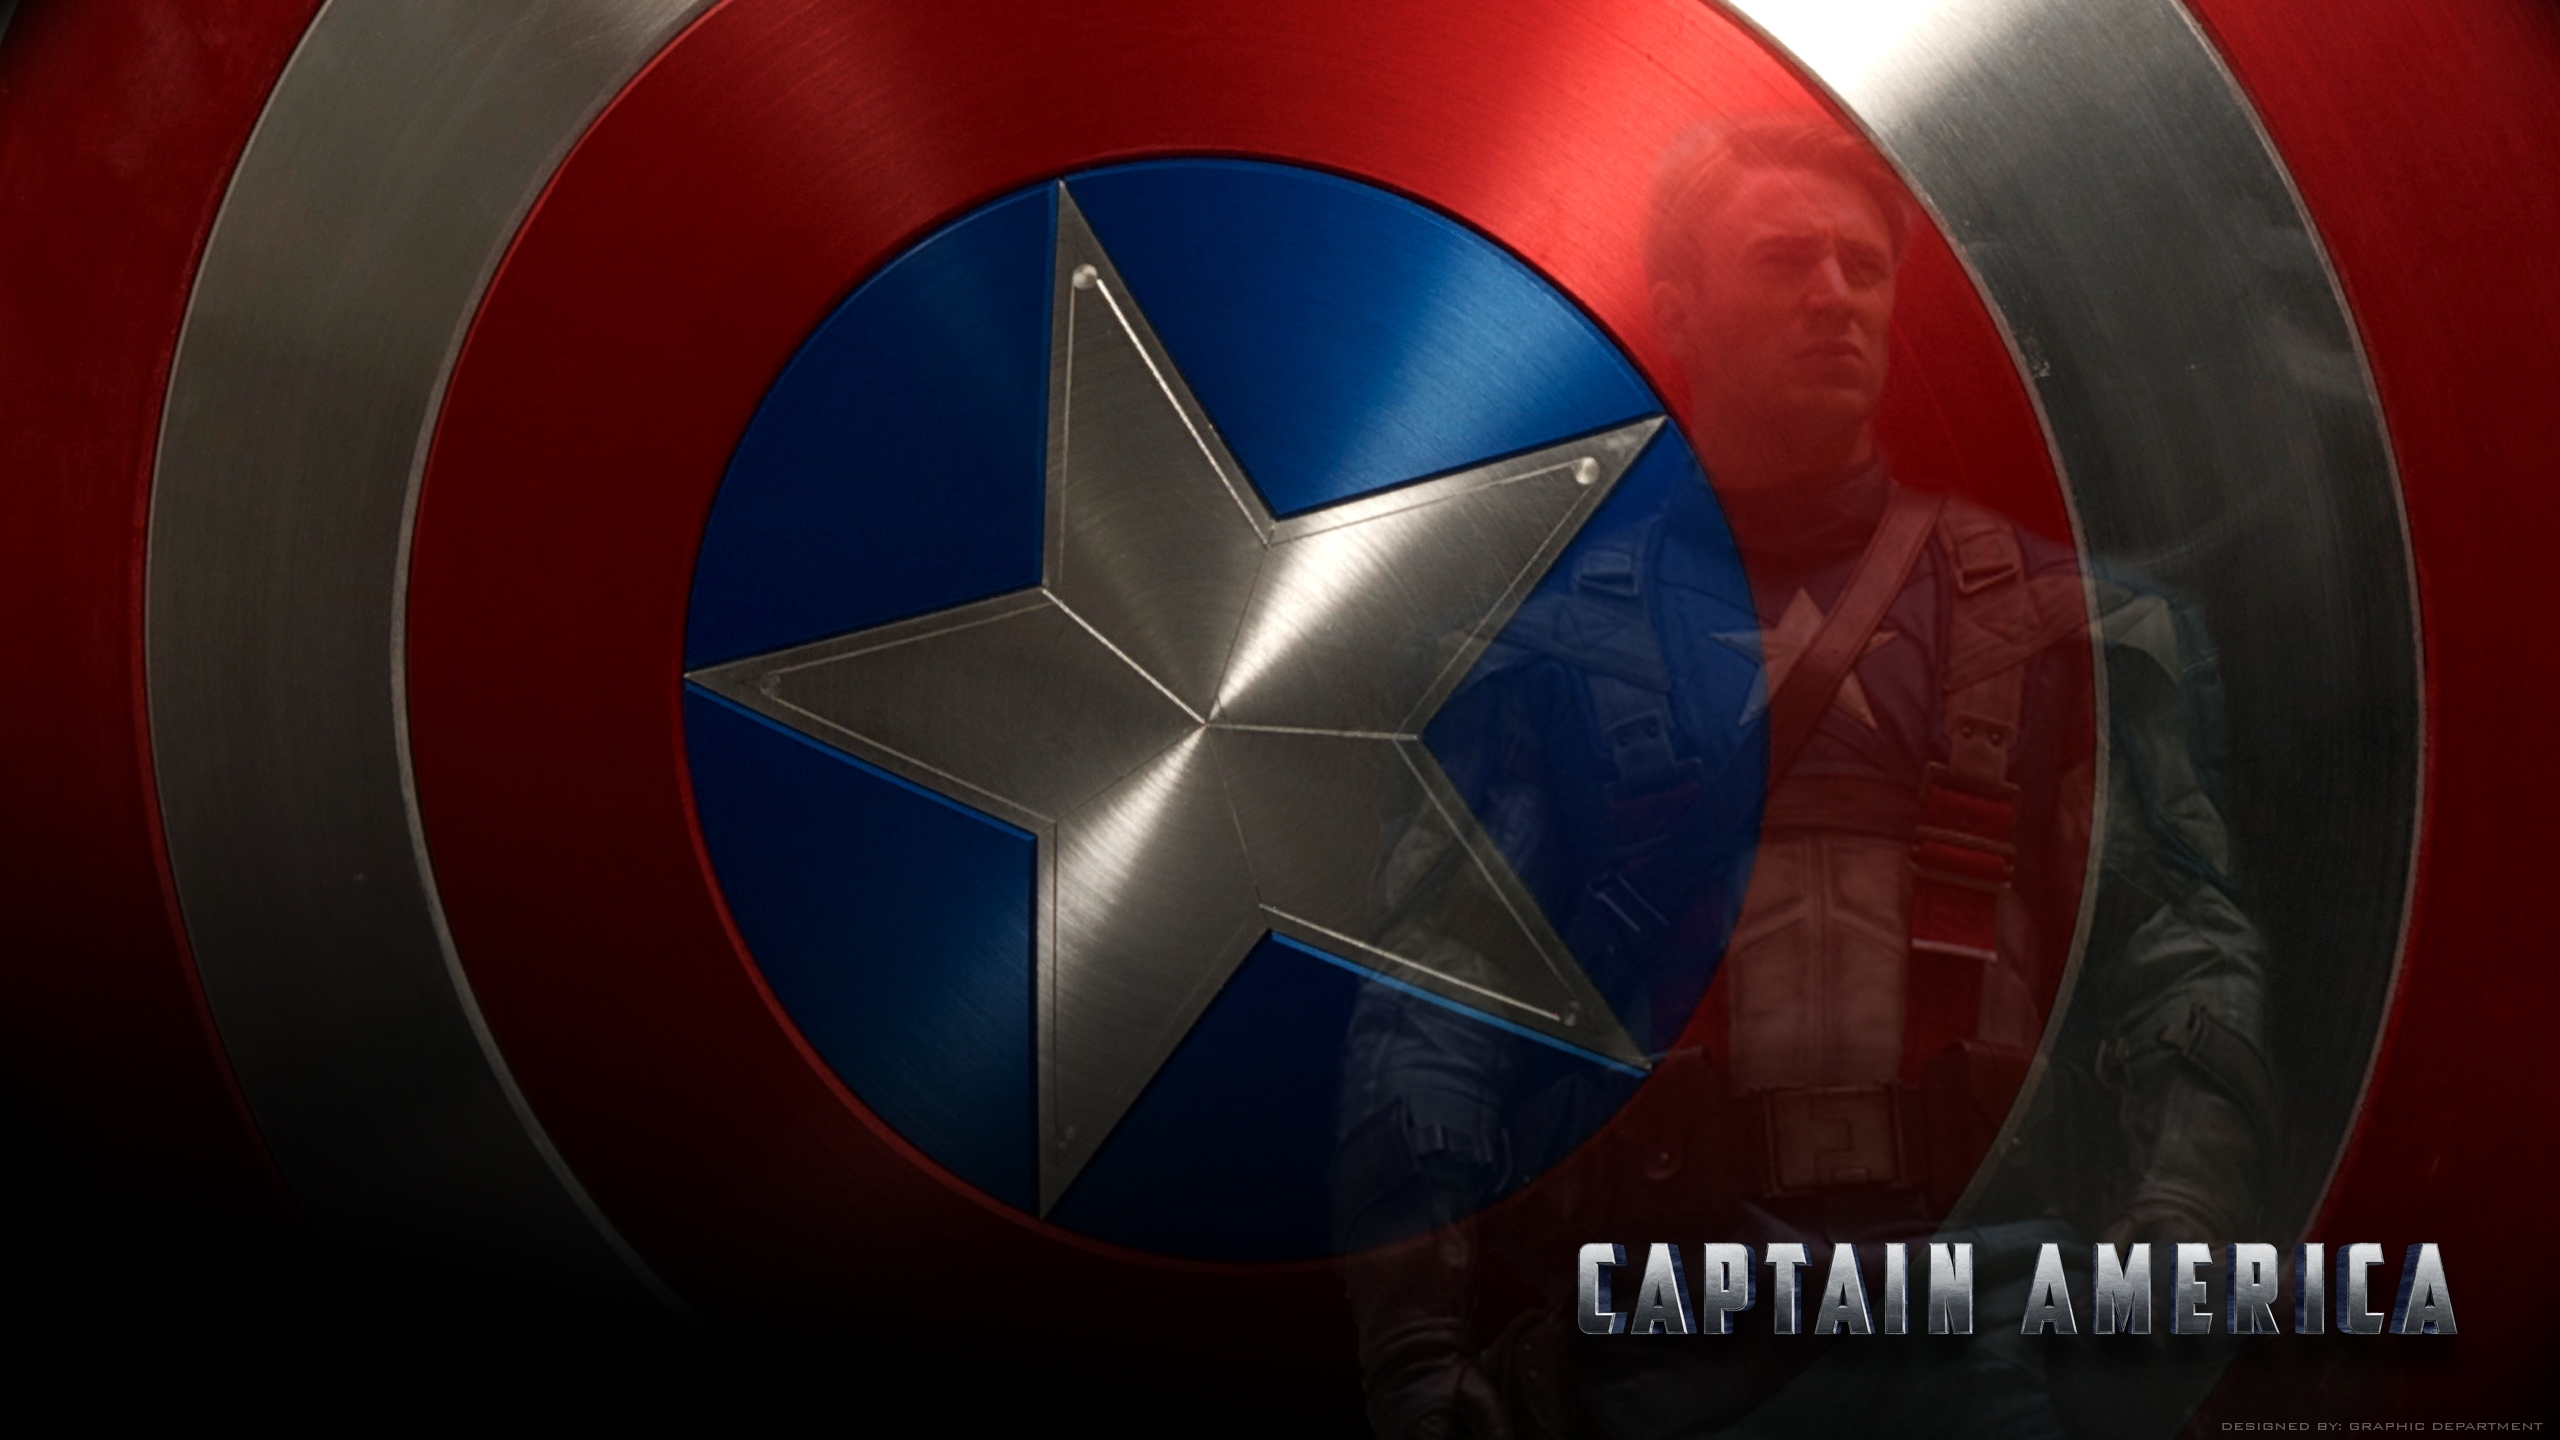 10 Finest And Most Recent Captain America Desktop Backgrounds For Desktop  With FULL HD 1080p (1920 × 1080) FREE DOWNLOAD